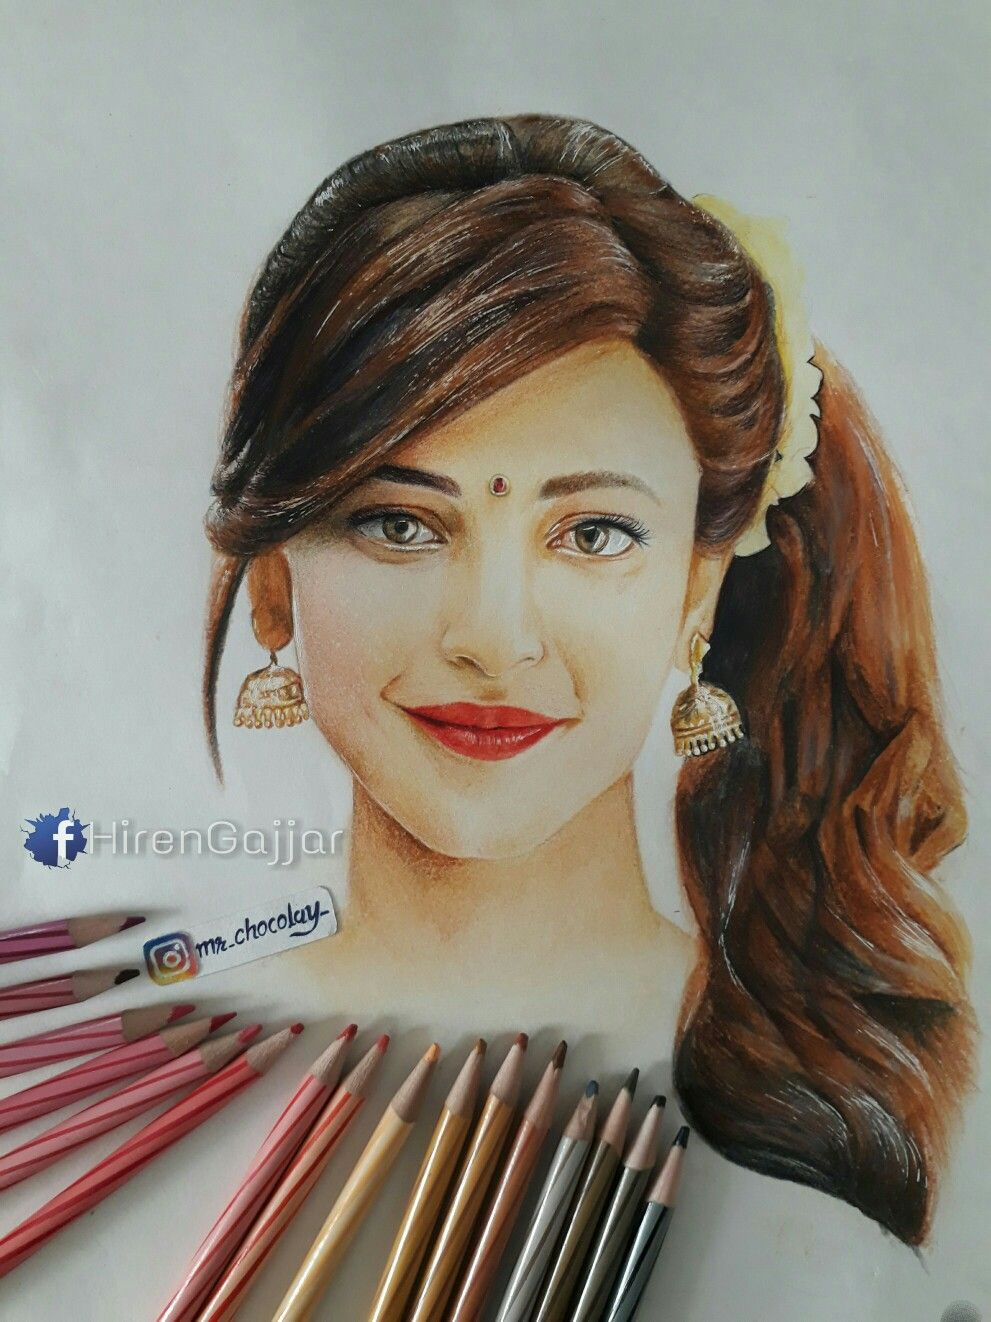 Realistic sketch of shruti hassan by hirengajjar also known as mr chocolaty